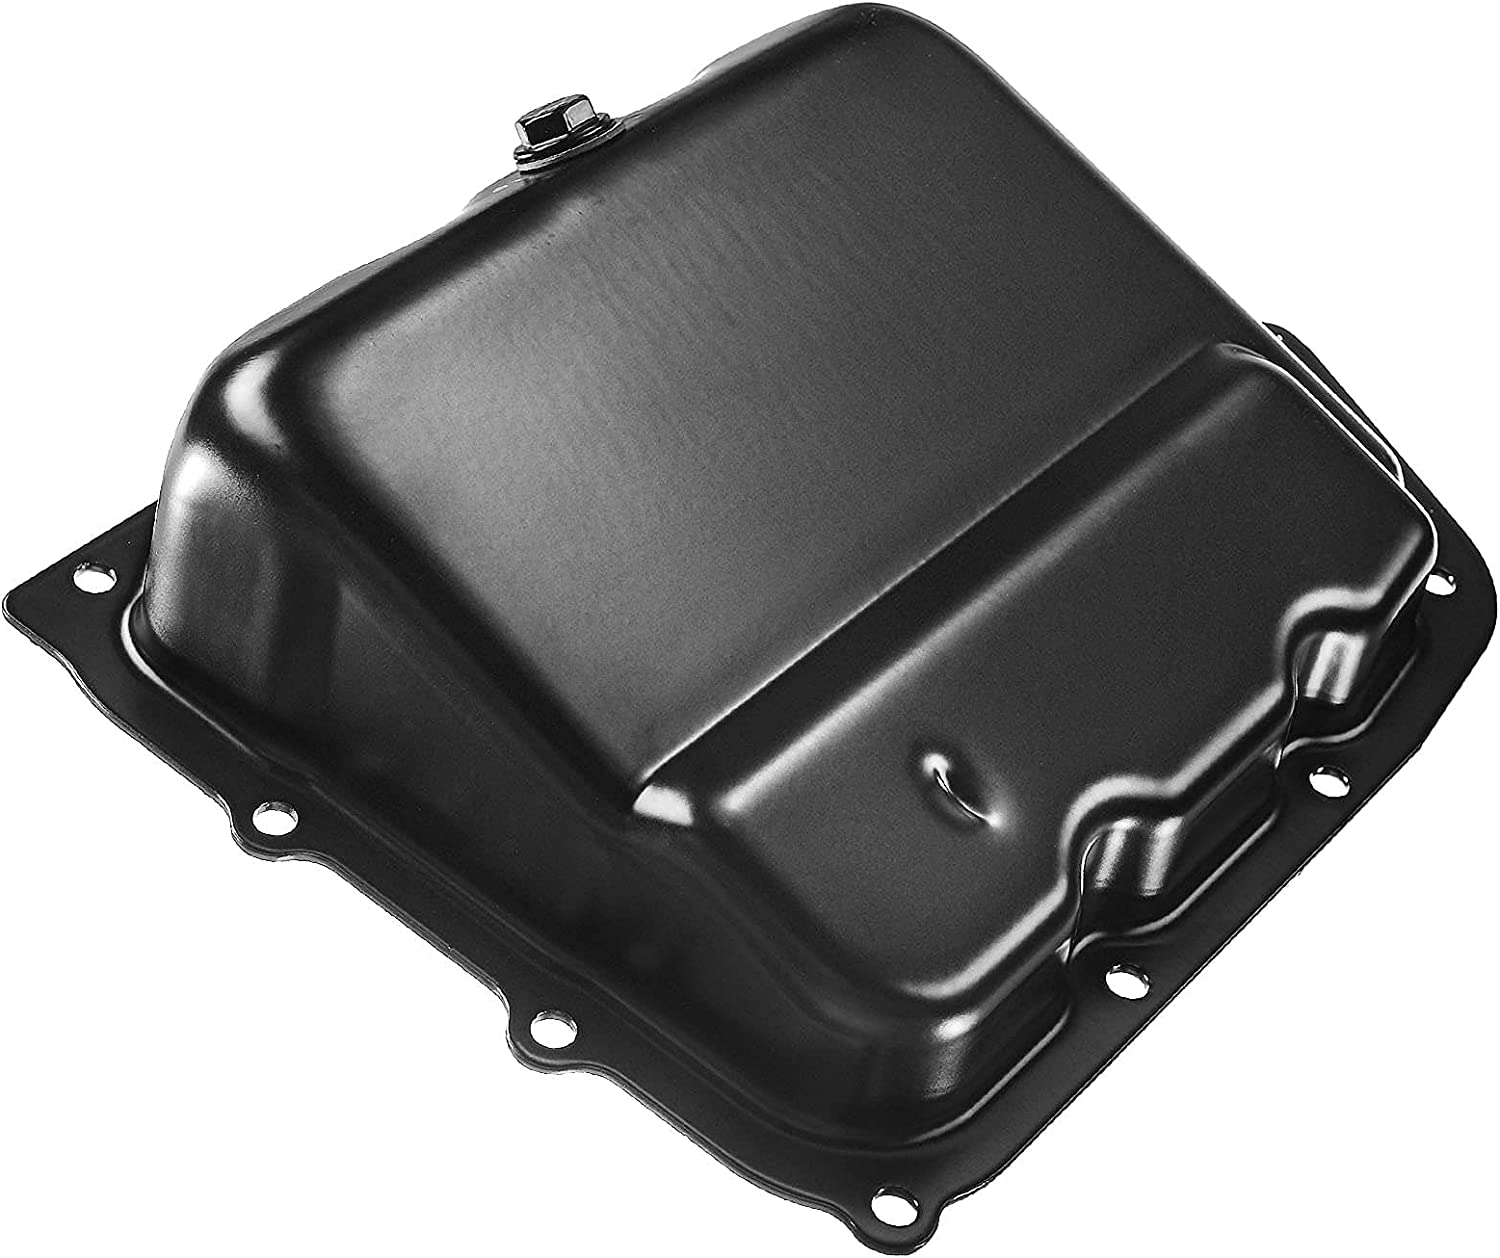 A-Premium Transmission Oil Pan Replacement Sebr for 200 Max 67% OFF OFFicial store Pacifica